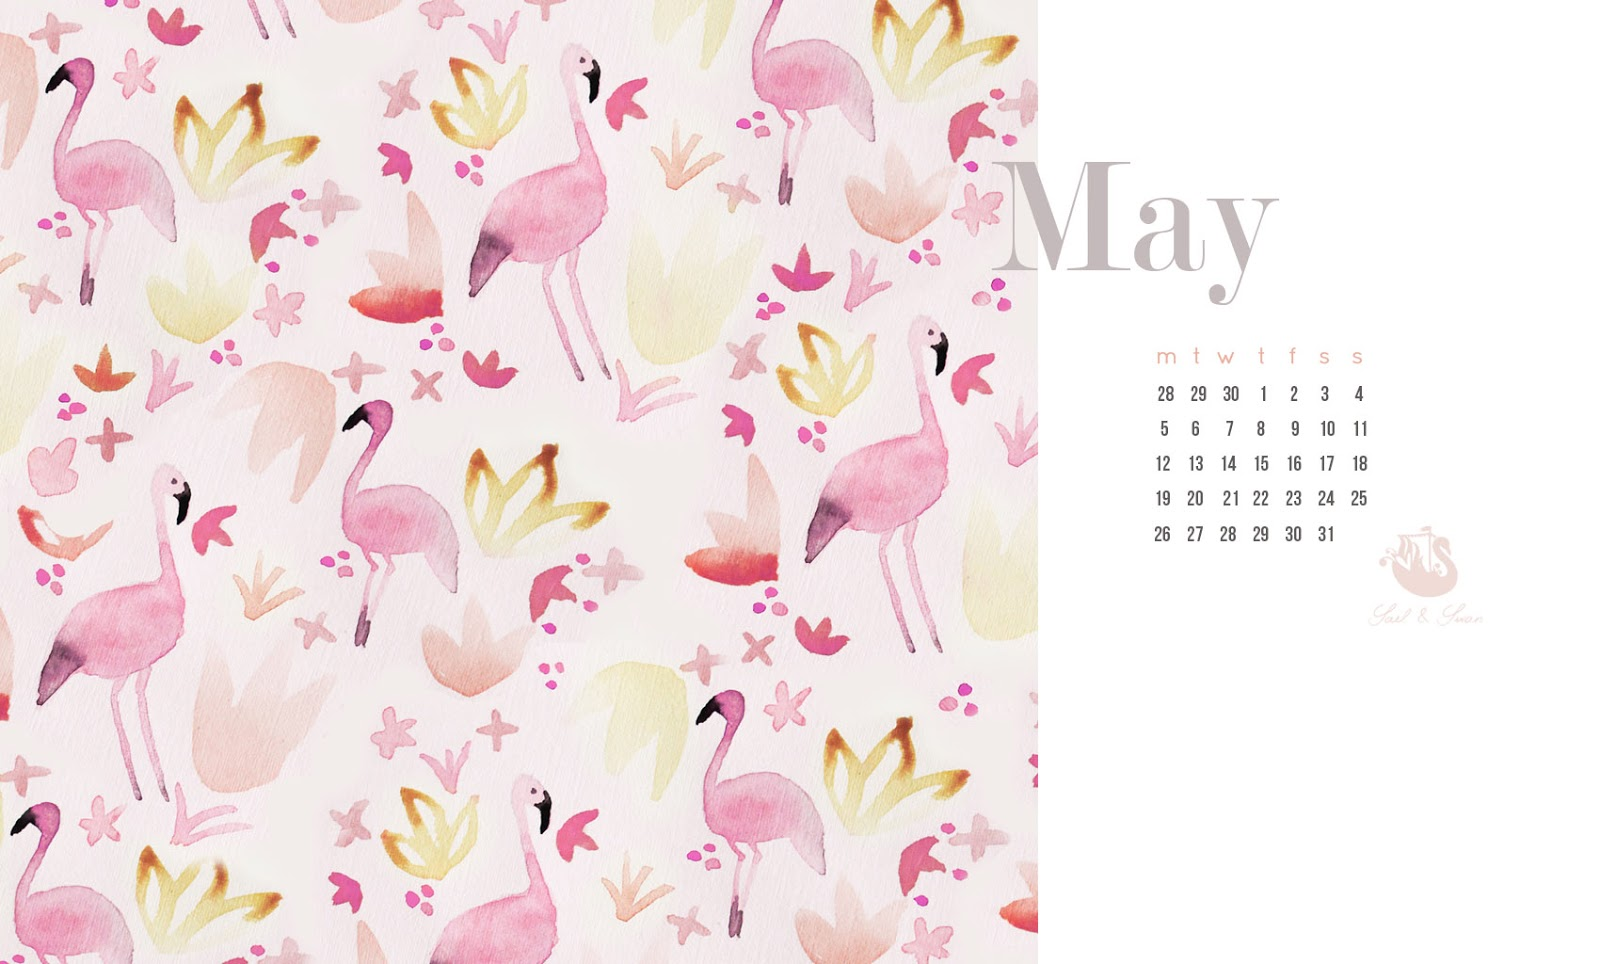 free desktop background watercolor painted pattern flamingos sail and swan